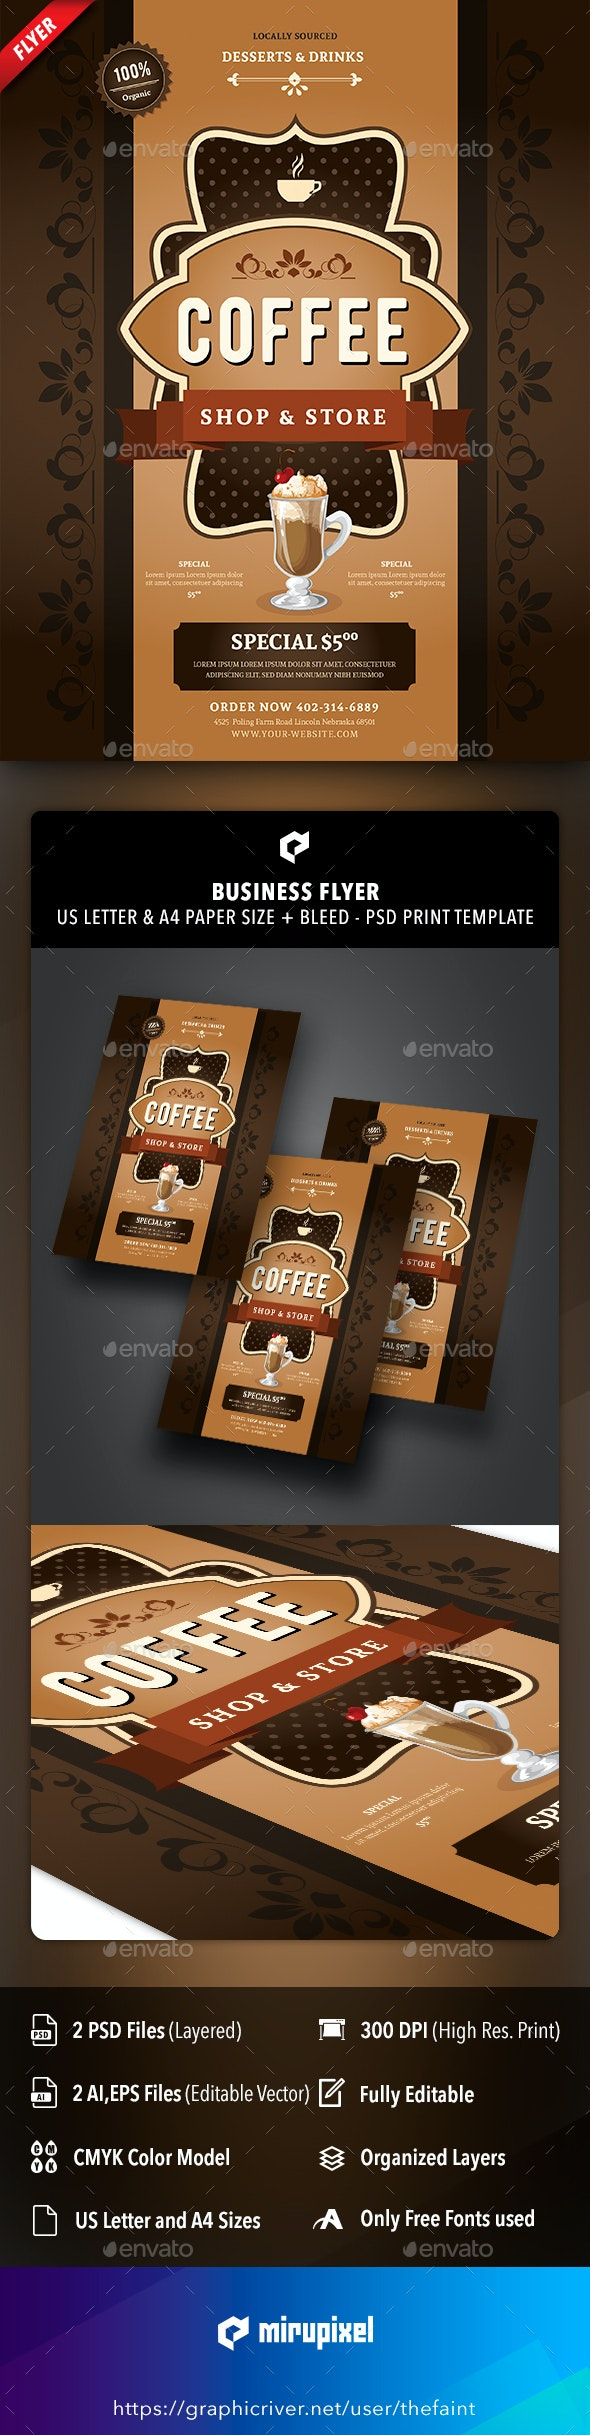 Coffee Business Flyer - Commerce Flyers